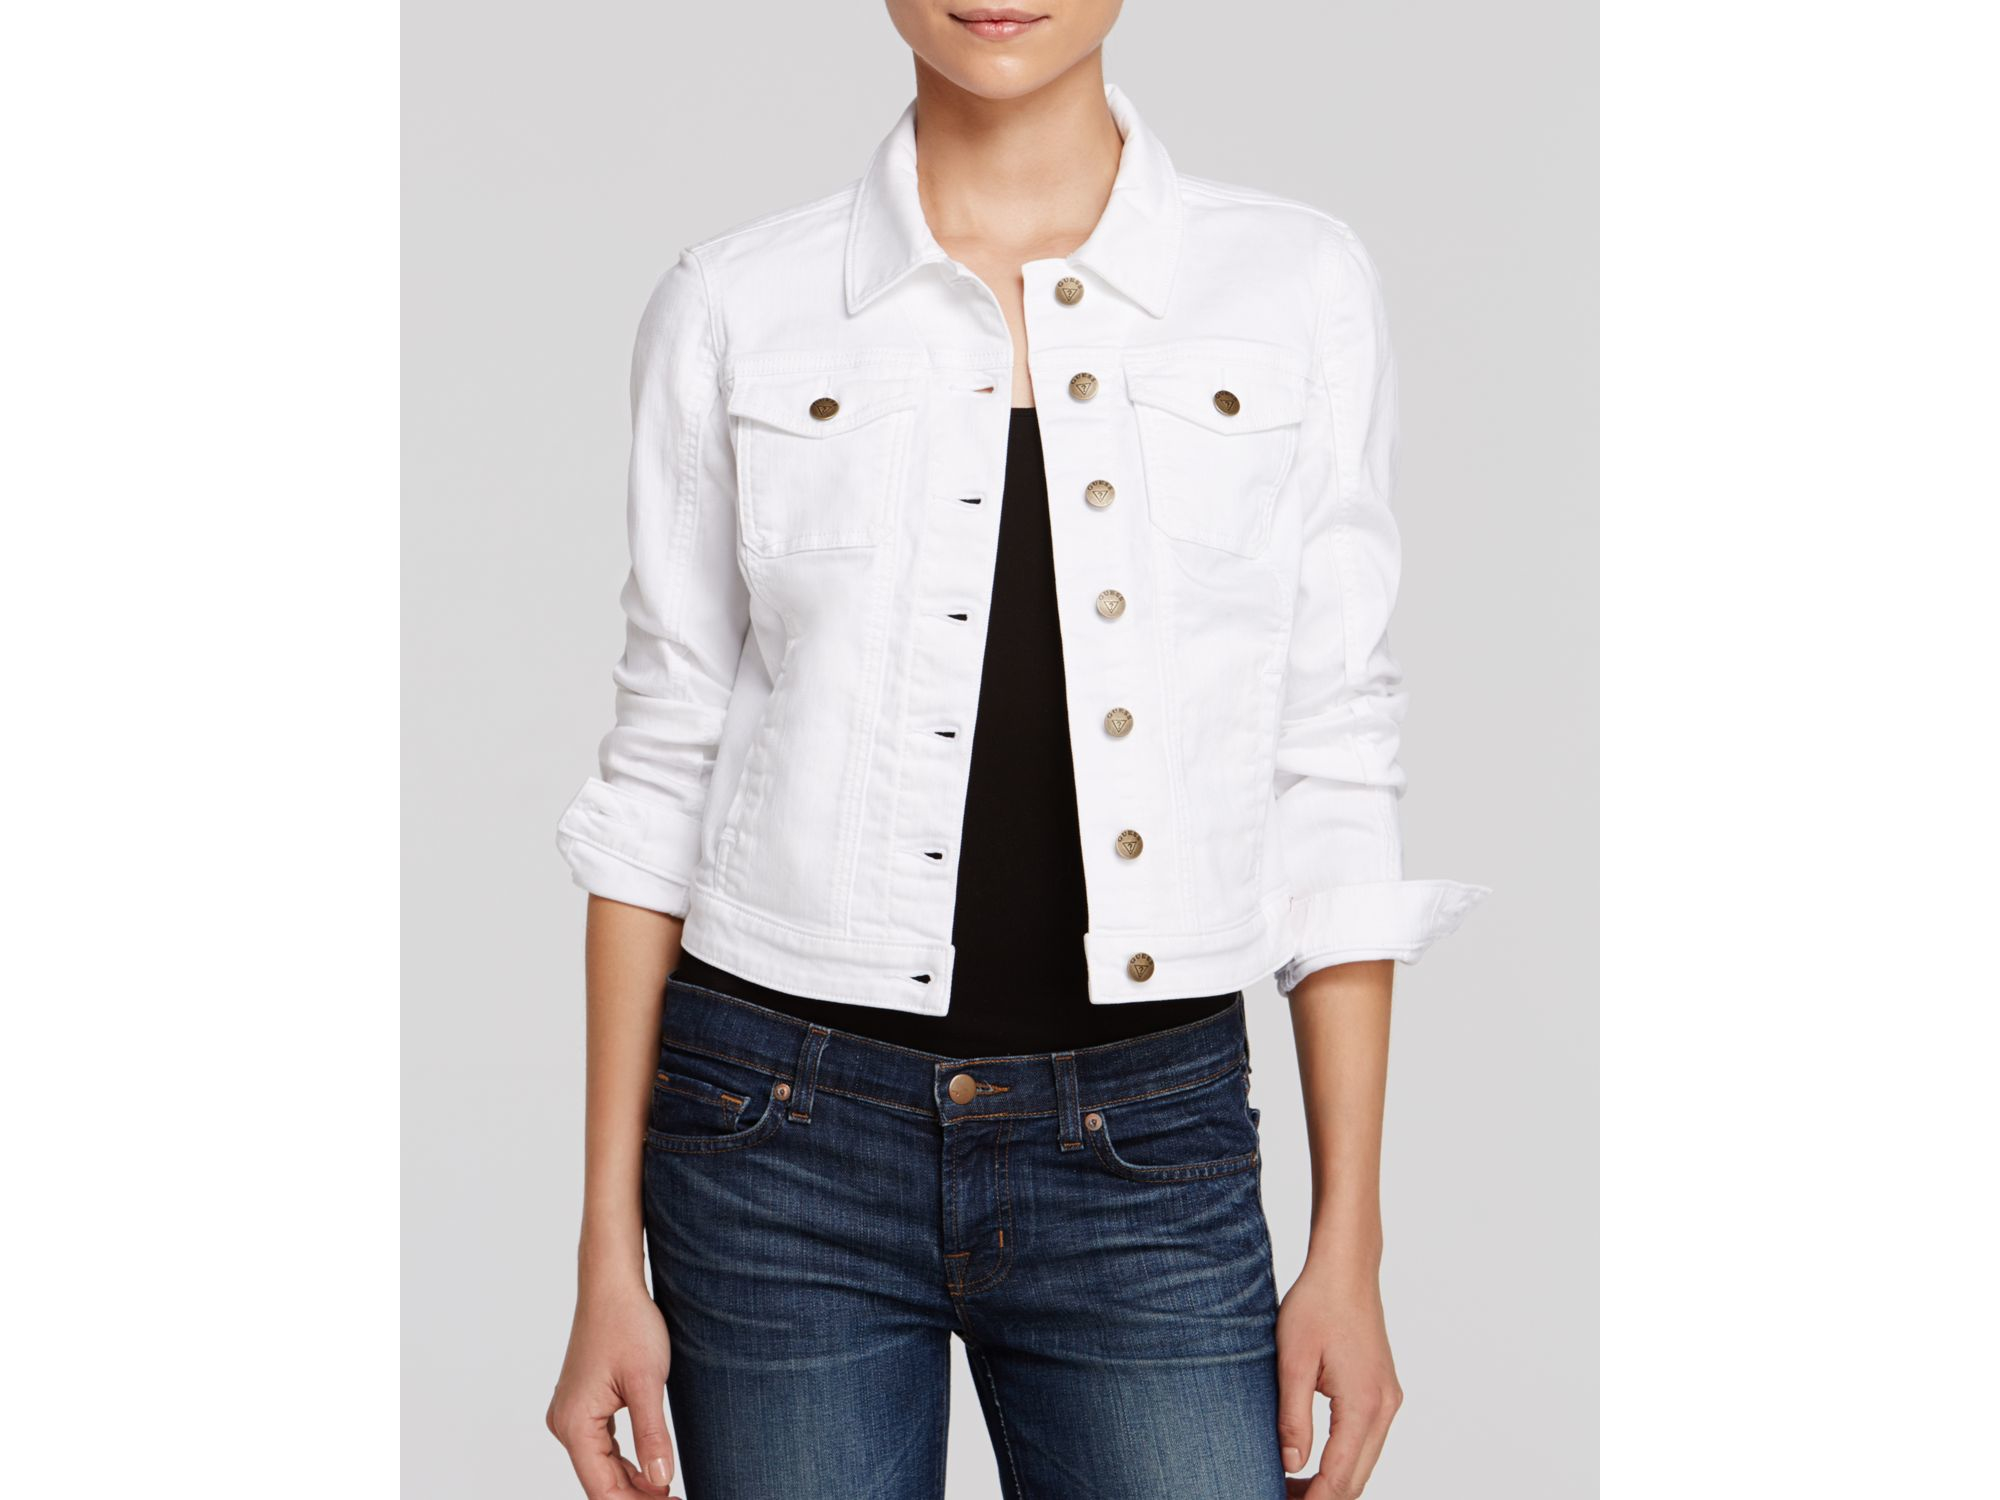 Lyst - Guess Denim Jacket - Classic Cropped White in White